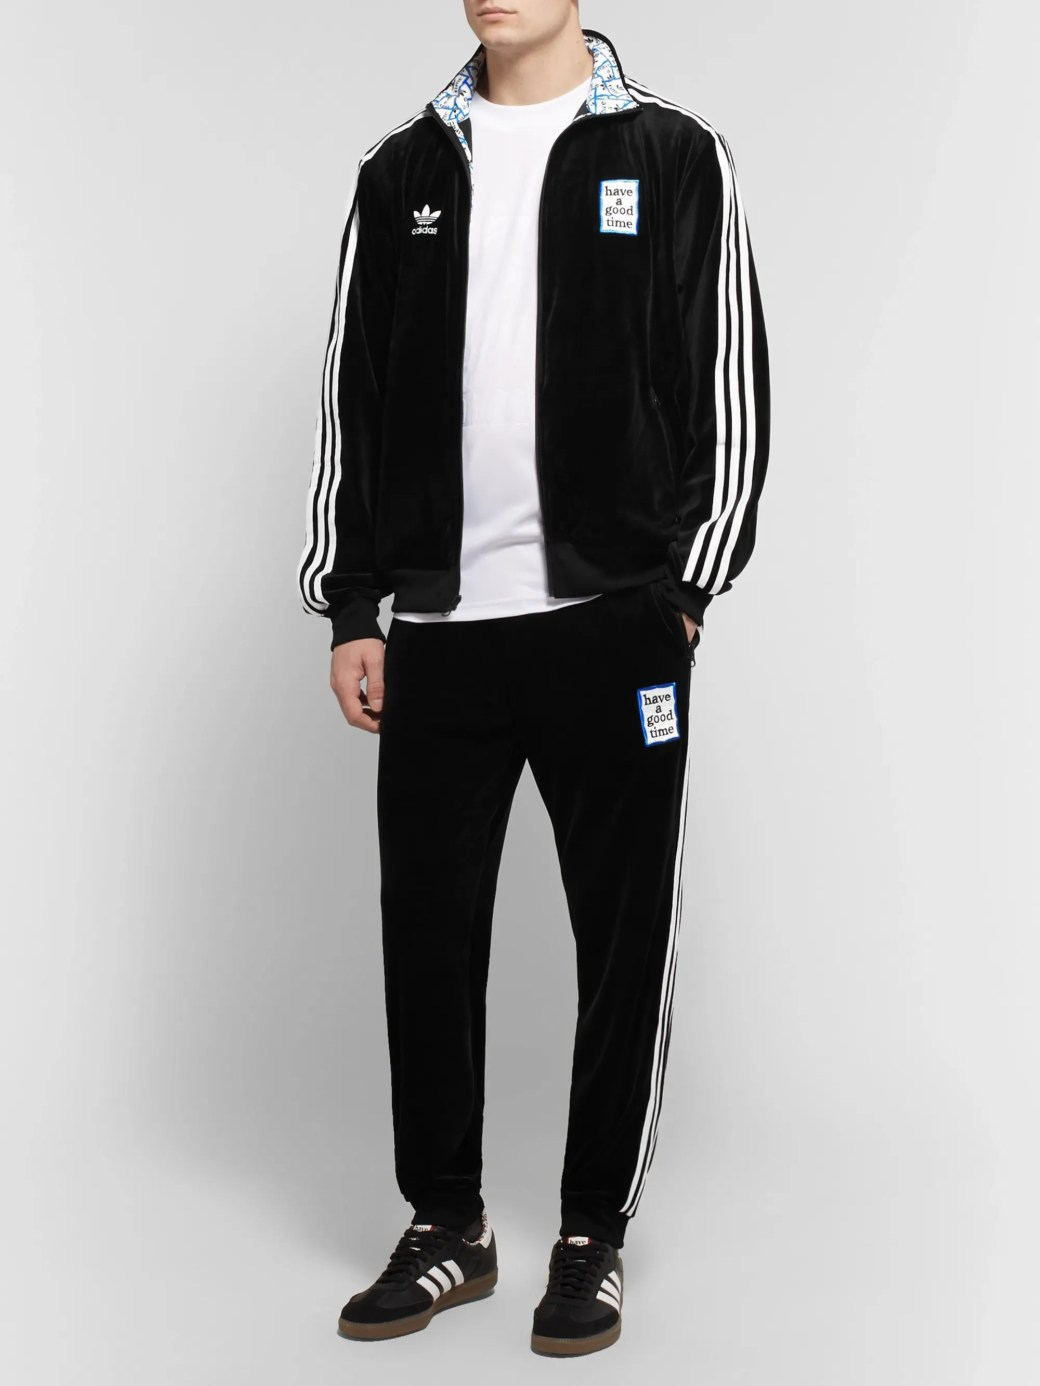 Image result for adidas